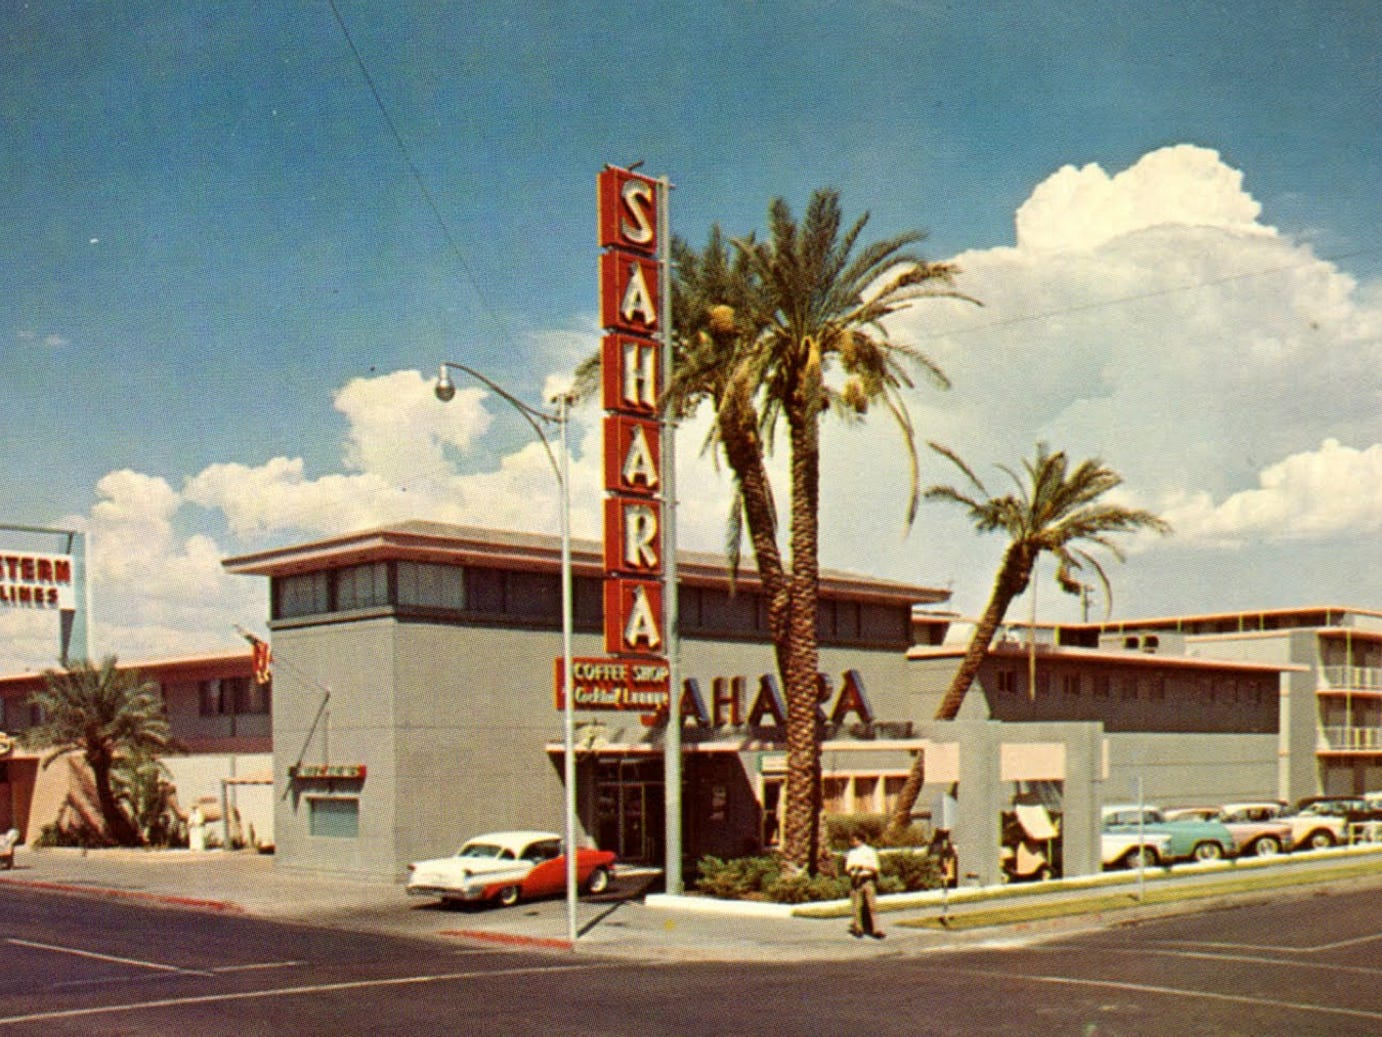 The Sahara Motor Inn opened in 1956 at the corner of First Street and Polk Street. It became the Ramada Inn in the 1960's.